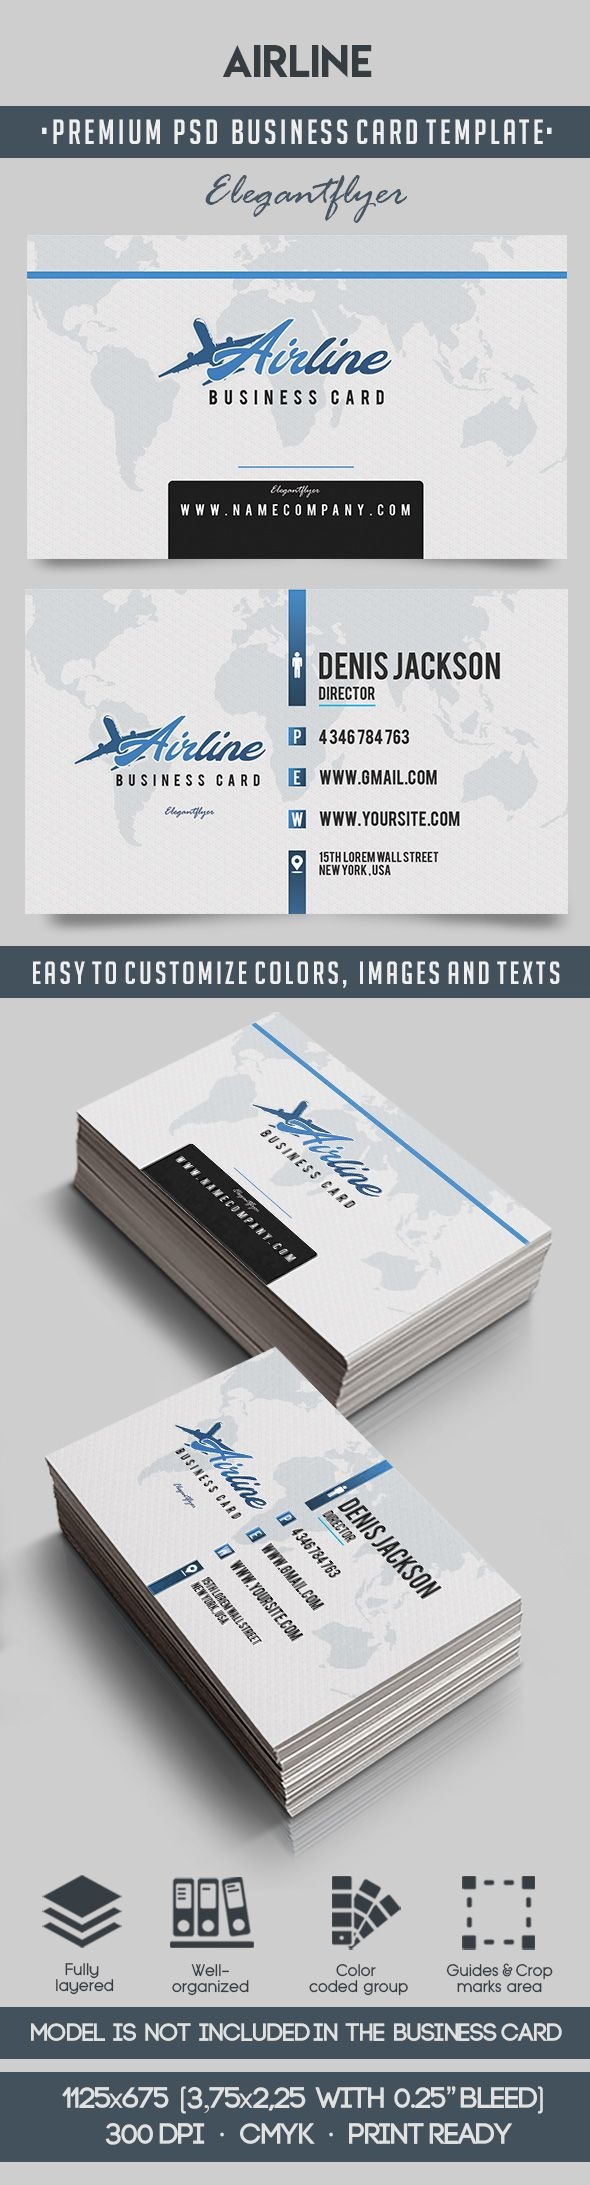 Airline – Premium Business Card Templates PSD